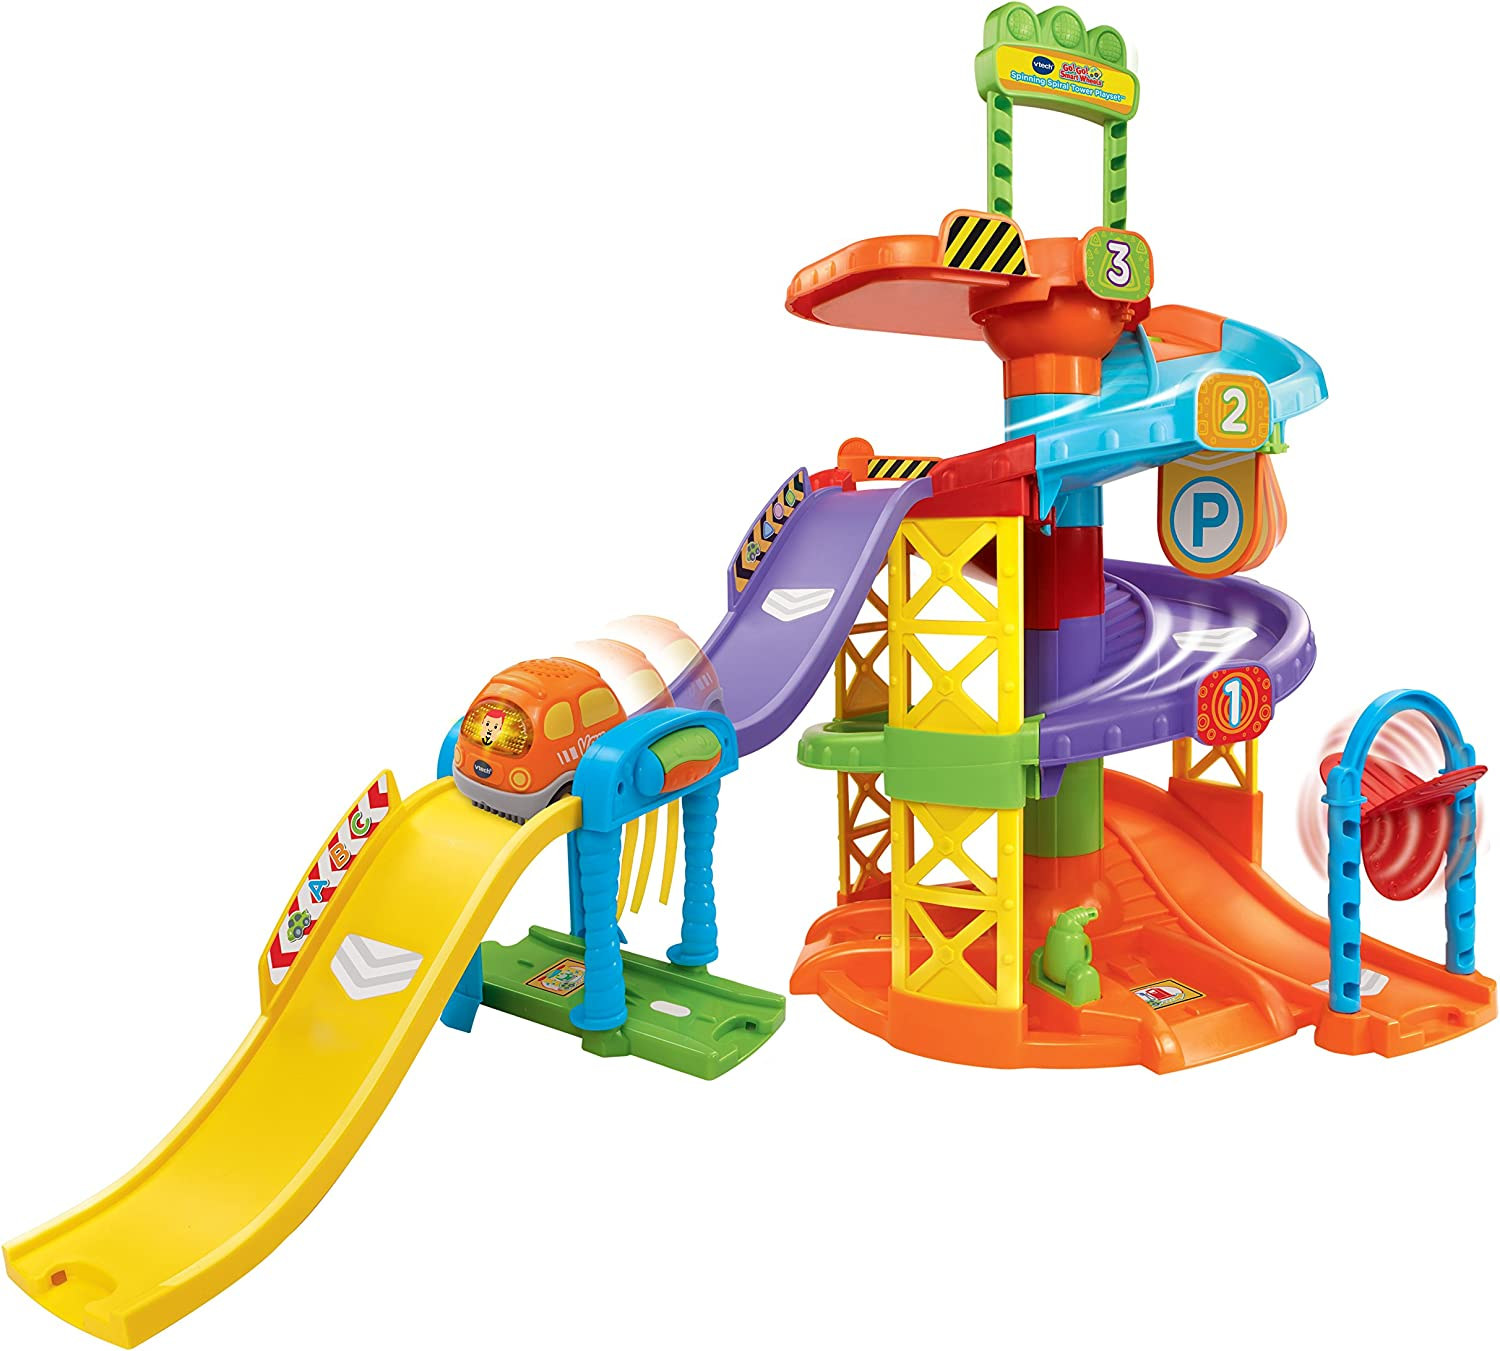 VTech Go! Go! Smart Wheels Spinning Spiral Tower Playset (Frustration Free Packaging) Multicolor, 12.60 x 20.67 x 28.15 Inches